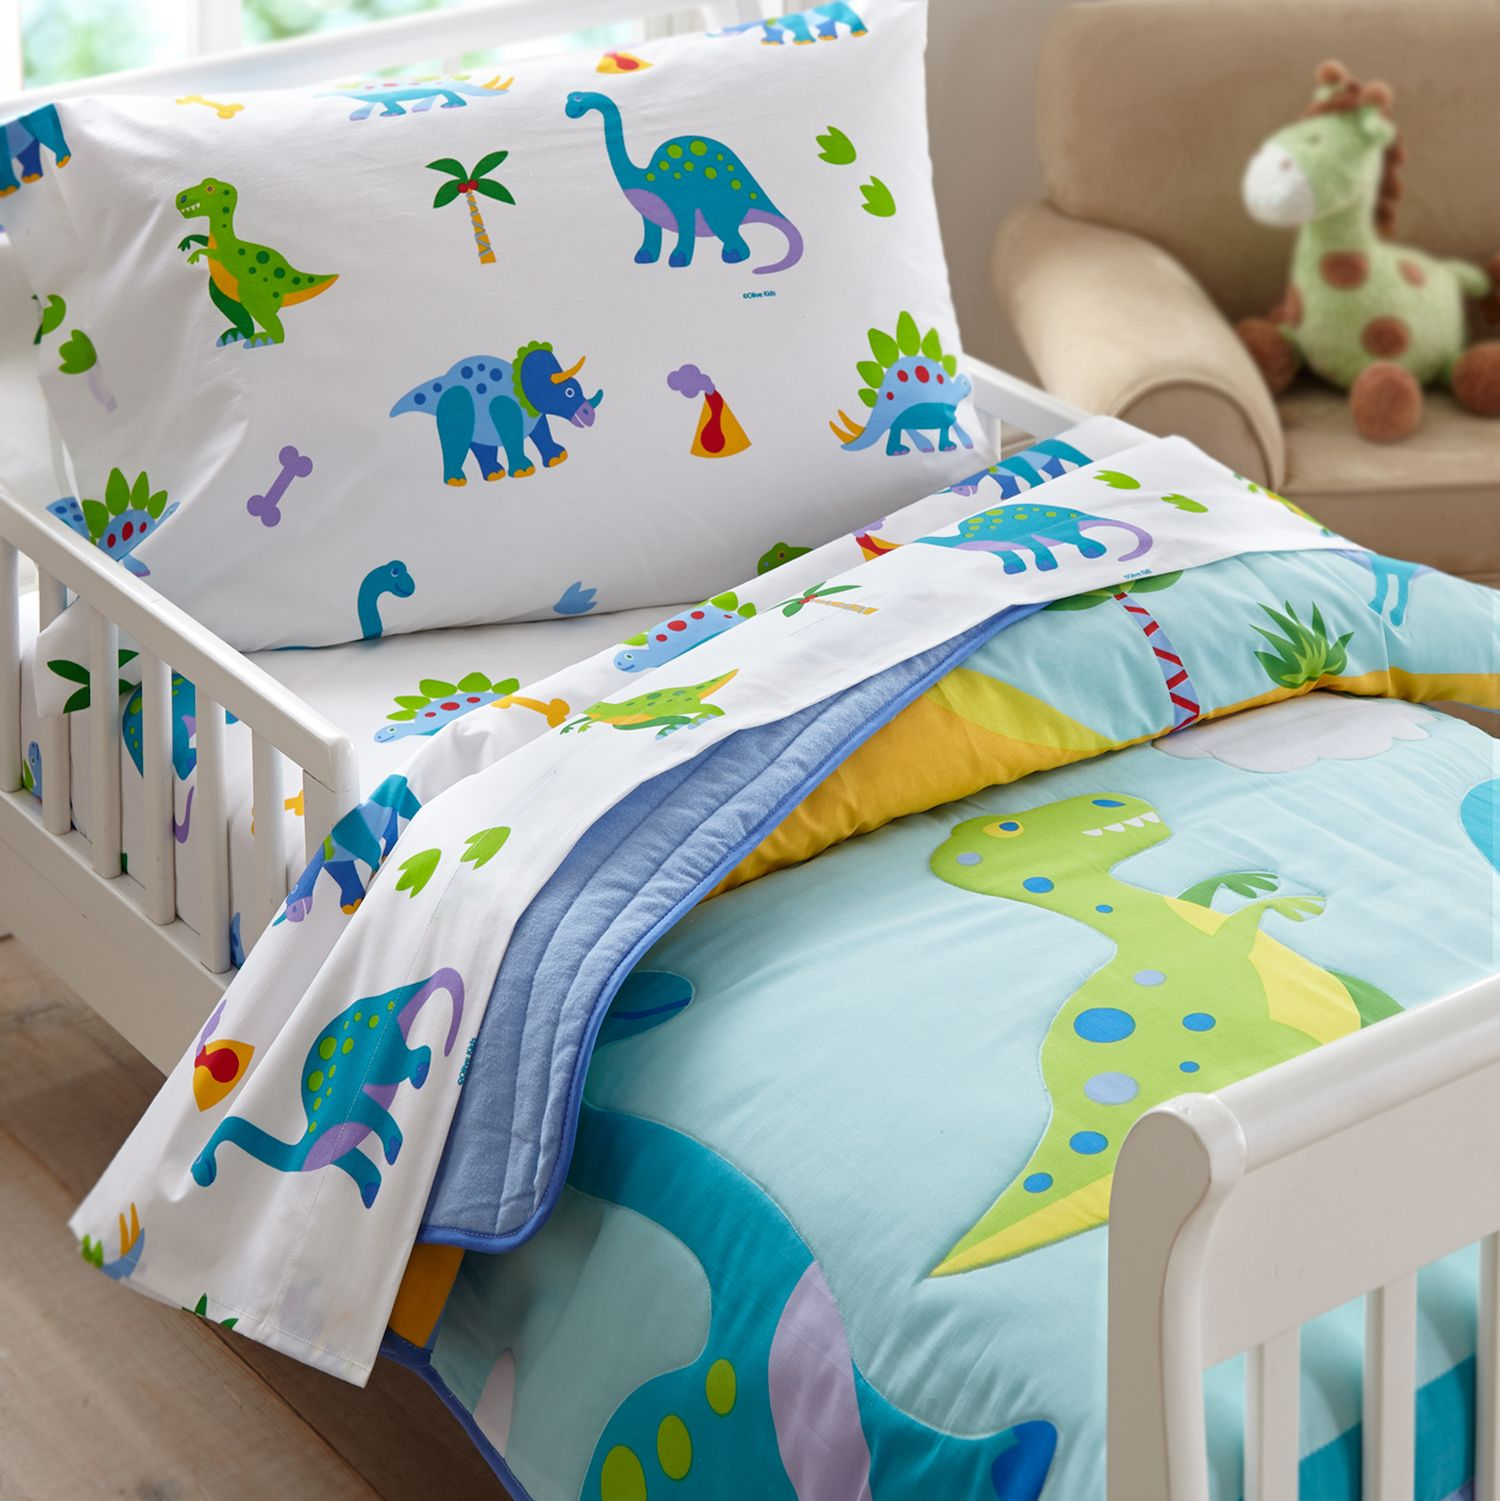 Dinosaurland Blue Green Dinosaur Toddler Bedding Comforter Sheet Set Or Bed In A Bag Sleep